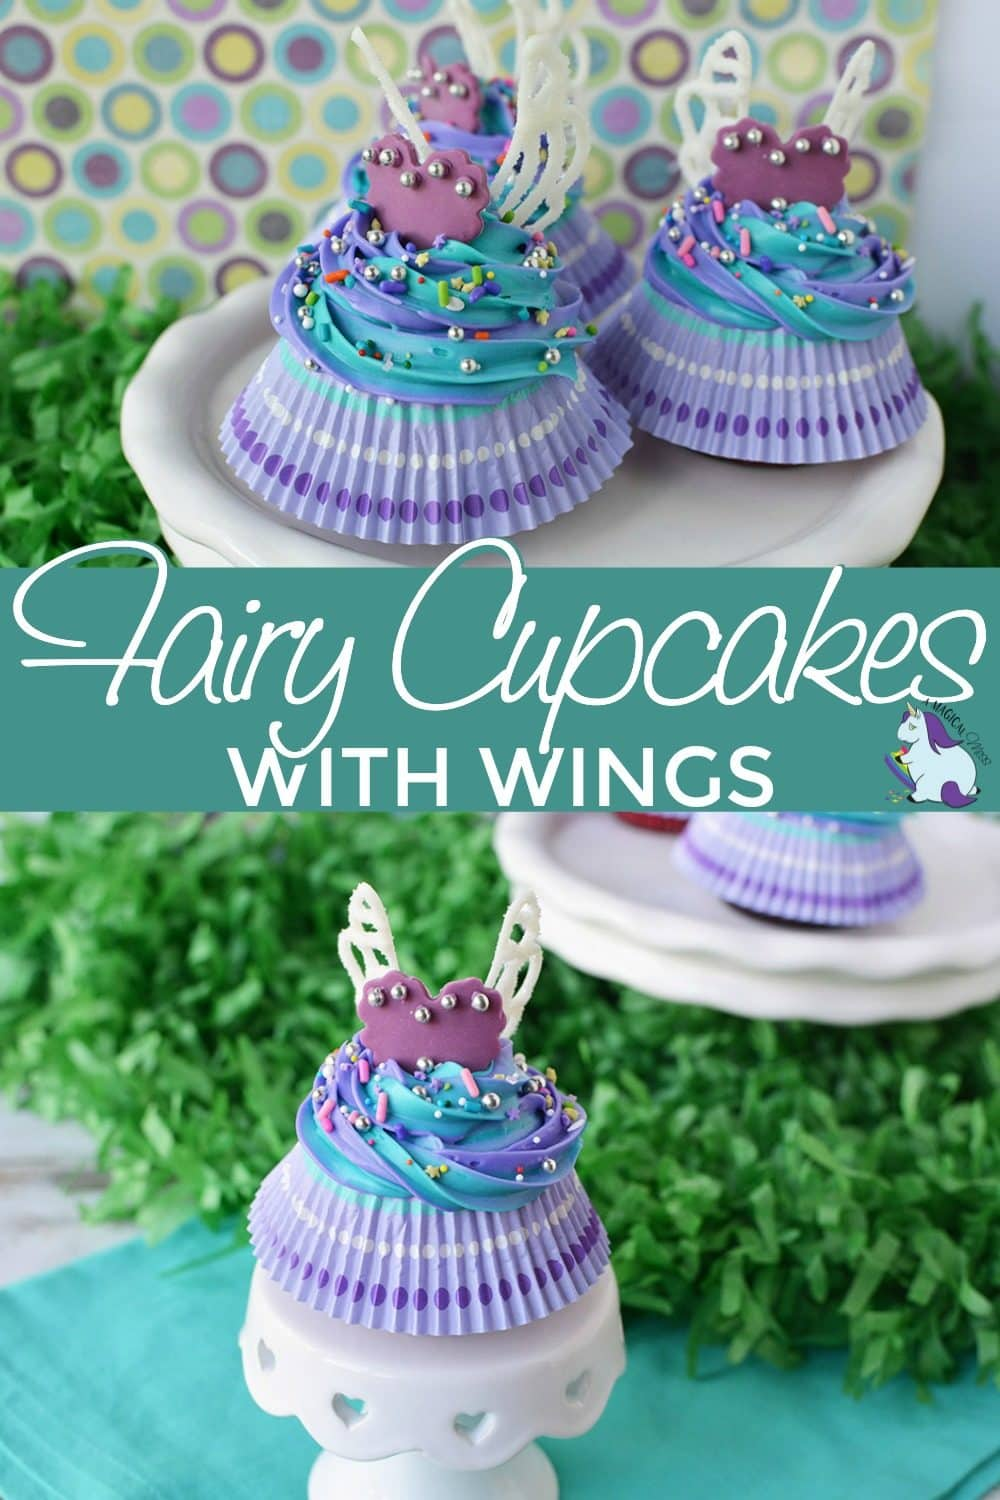 Cupcakes that look like fairies on a stand